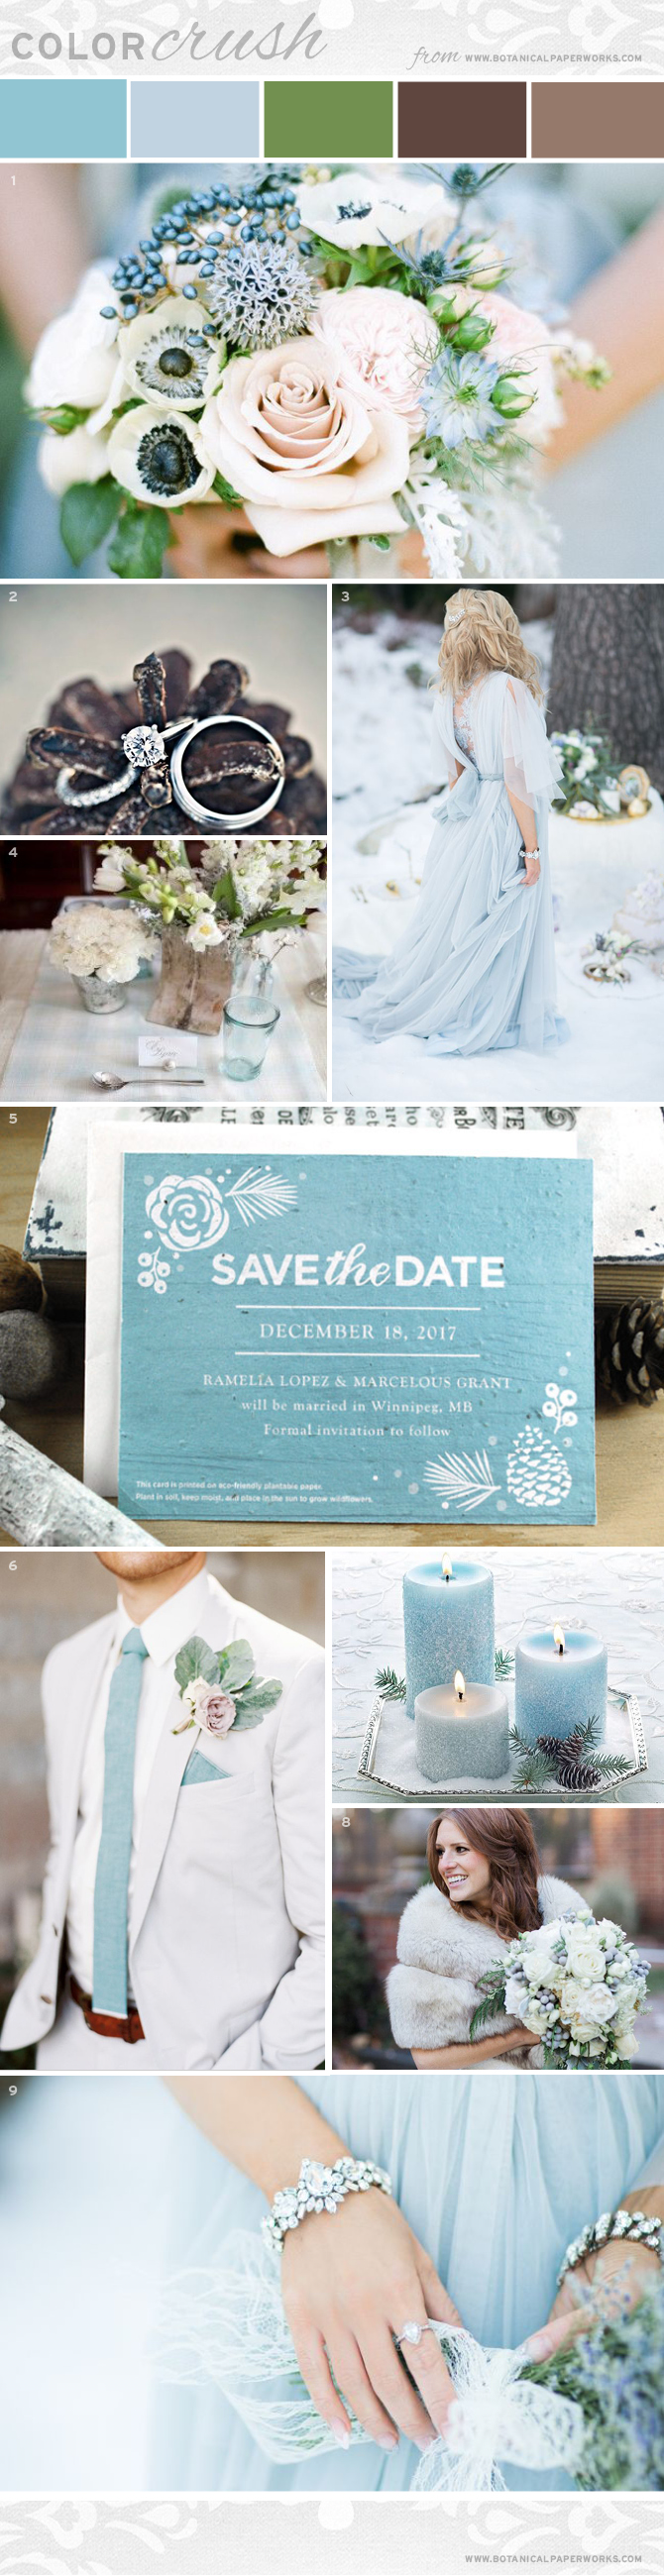 Elegant and romantic, our latest Color Crush #InspirationBoard features soft blue, umber and moss for a whimsical and captivating #wedding palette. #bridetobe #bride #weddingplanning